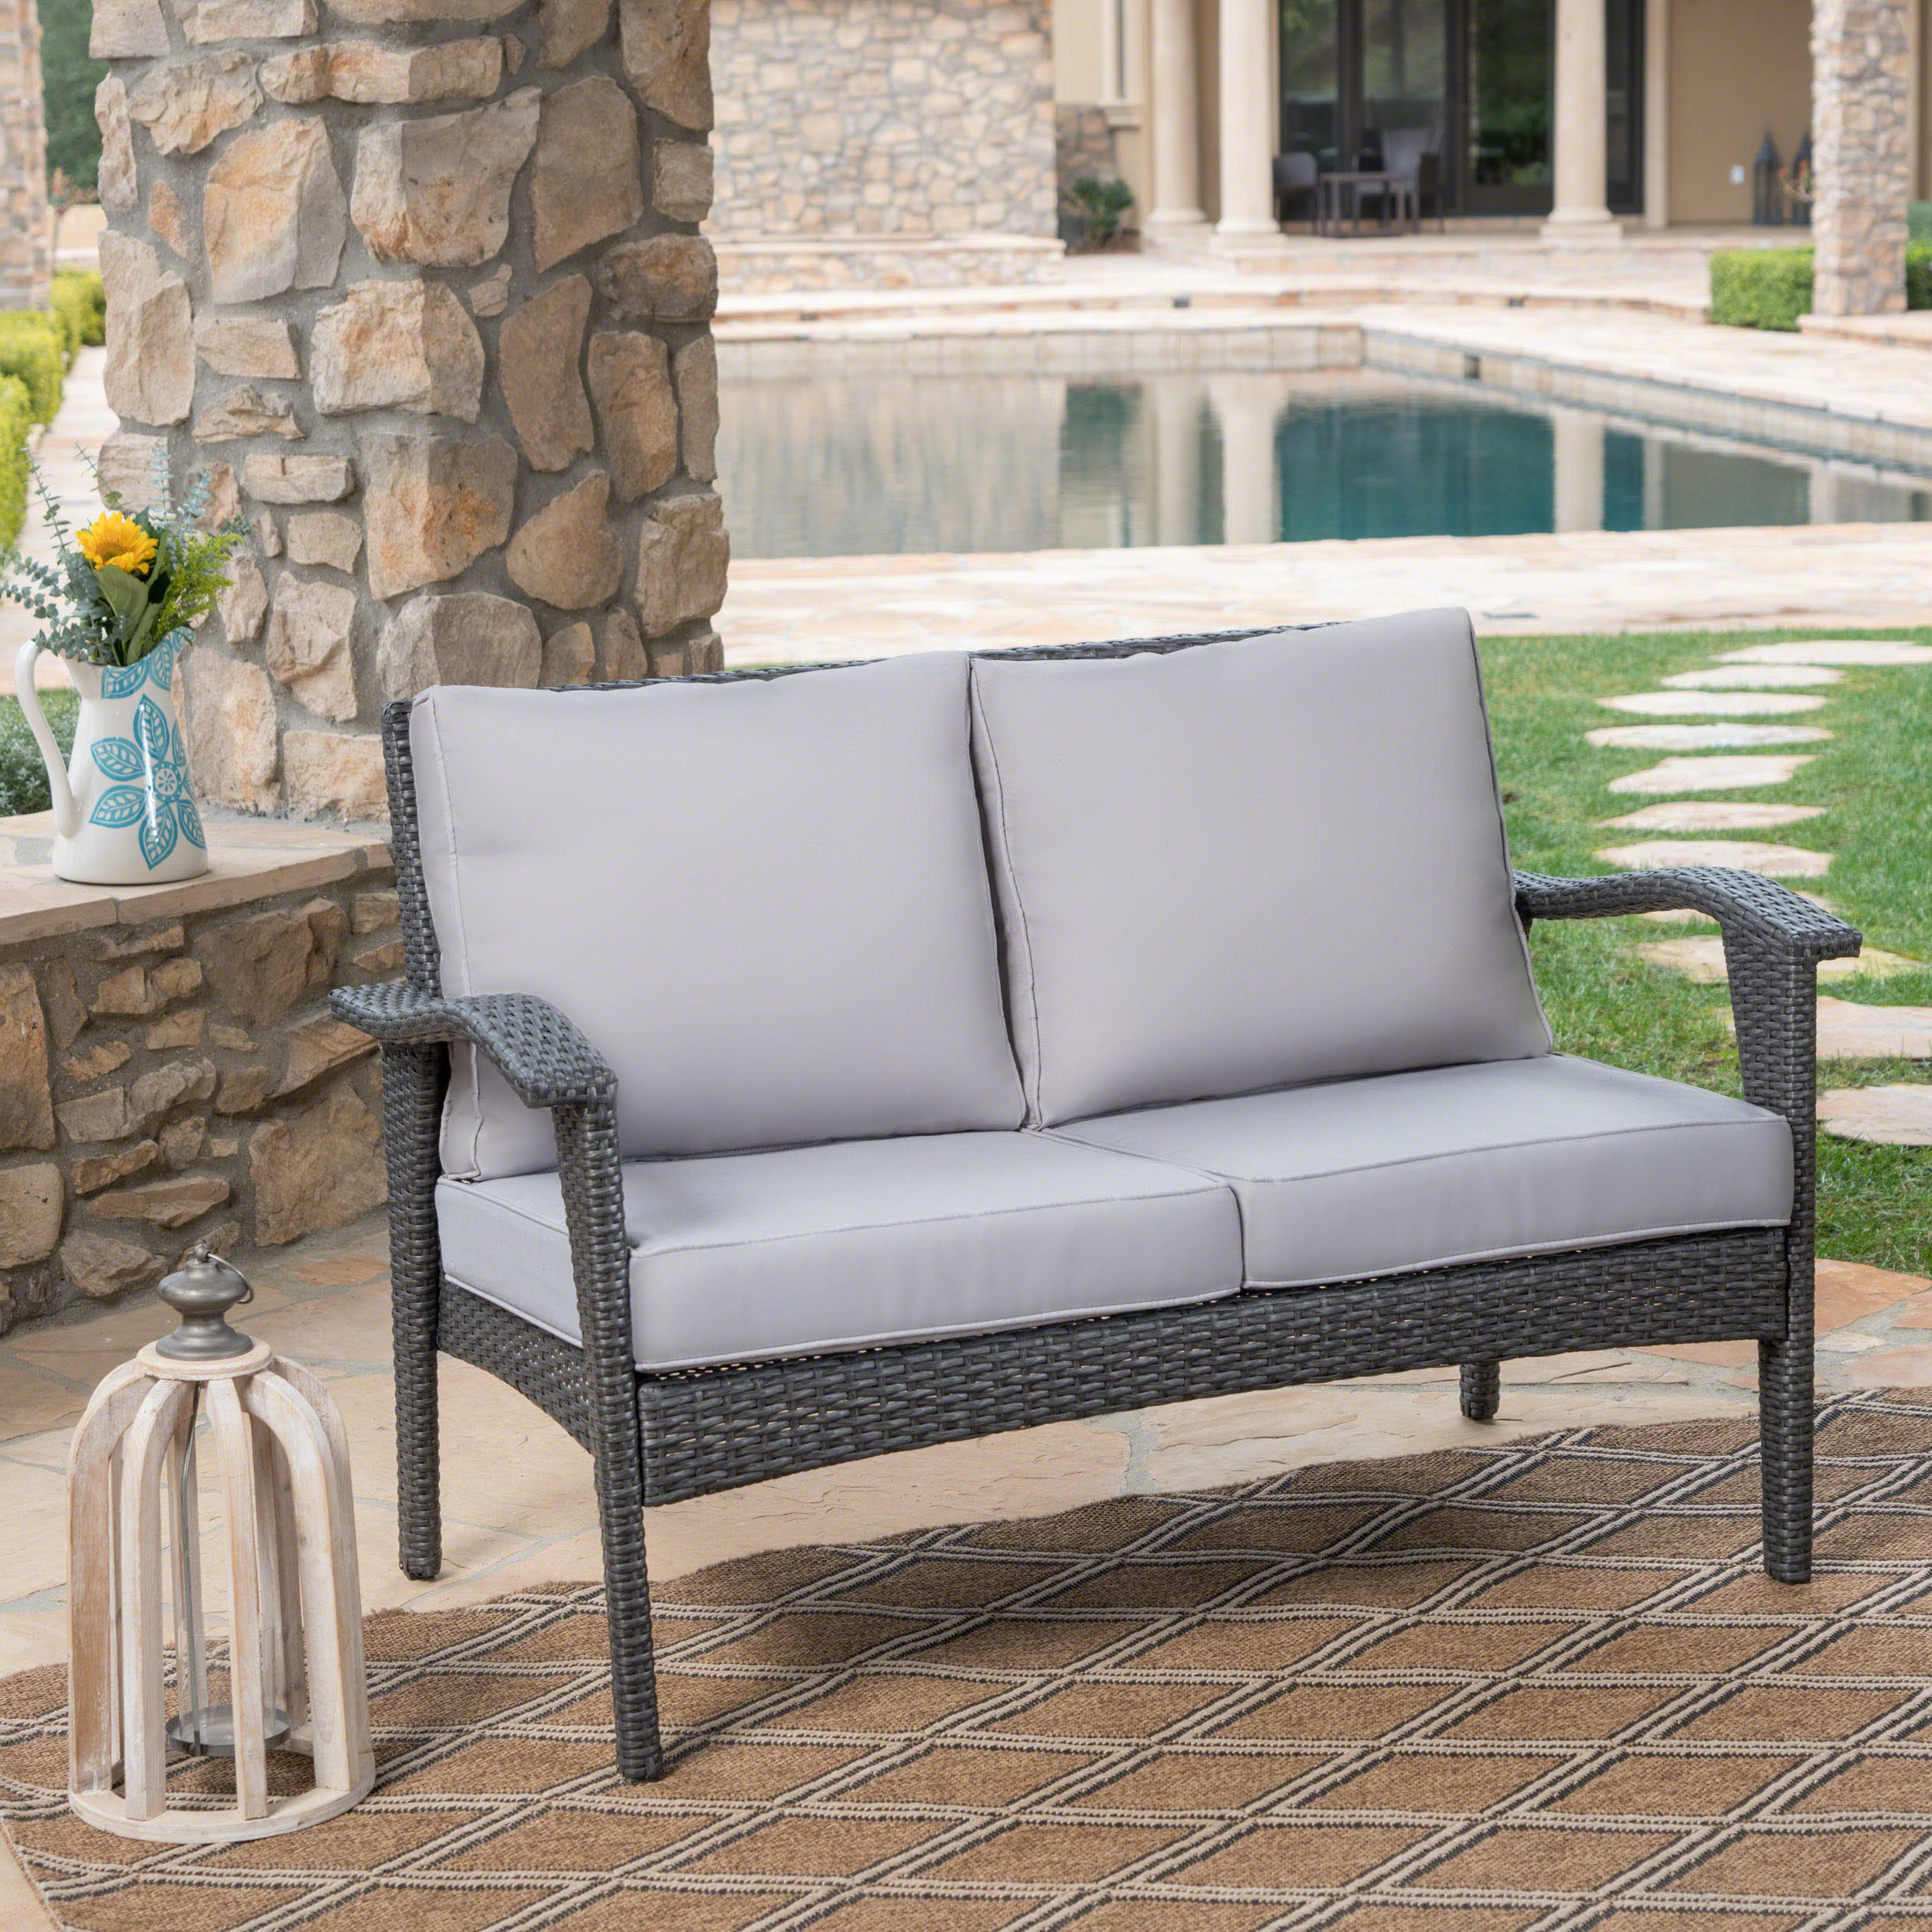 Hagler Outdoor Loveseat With Cushions For Newest Nadine Loveseats With Cushions (View 6 of 20)